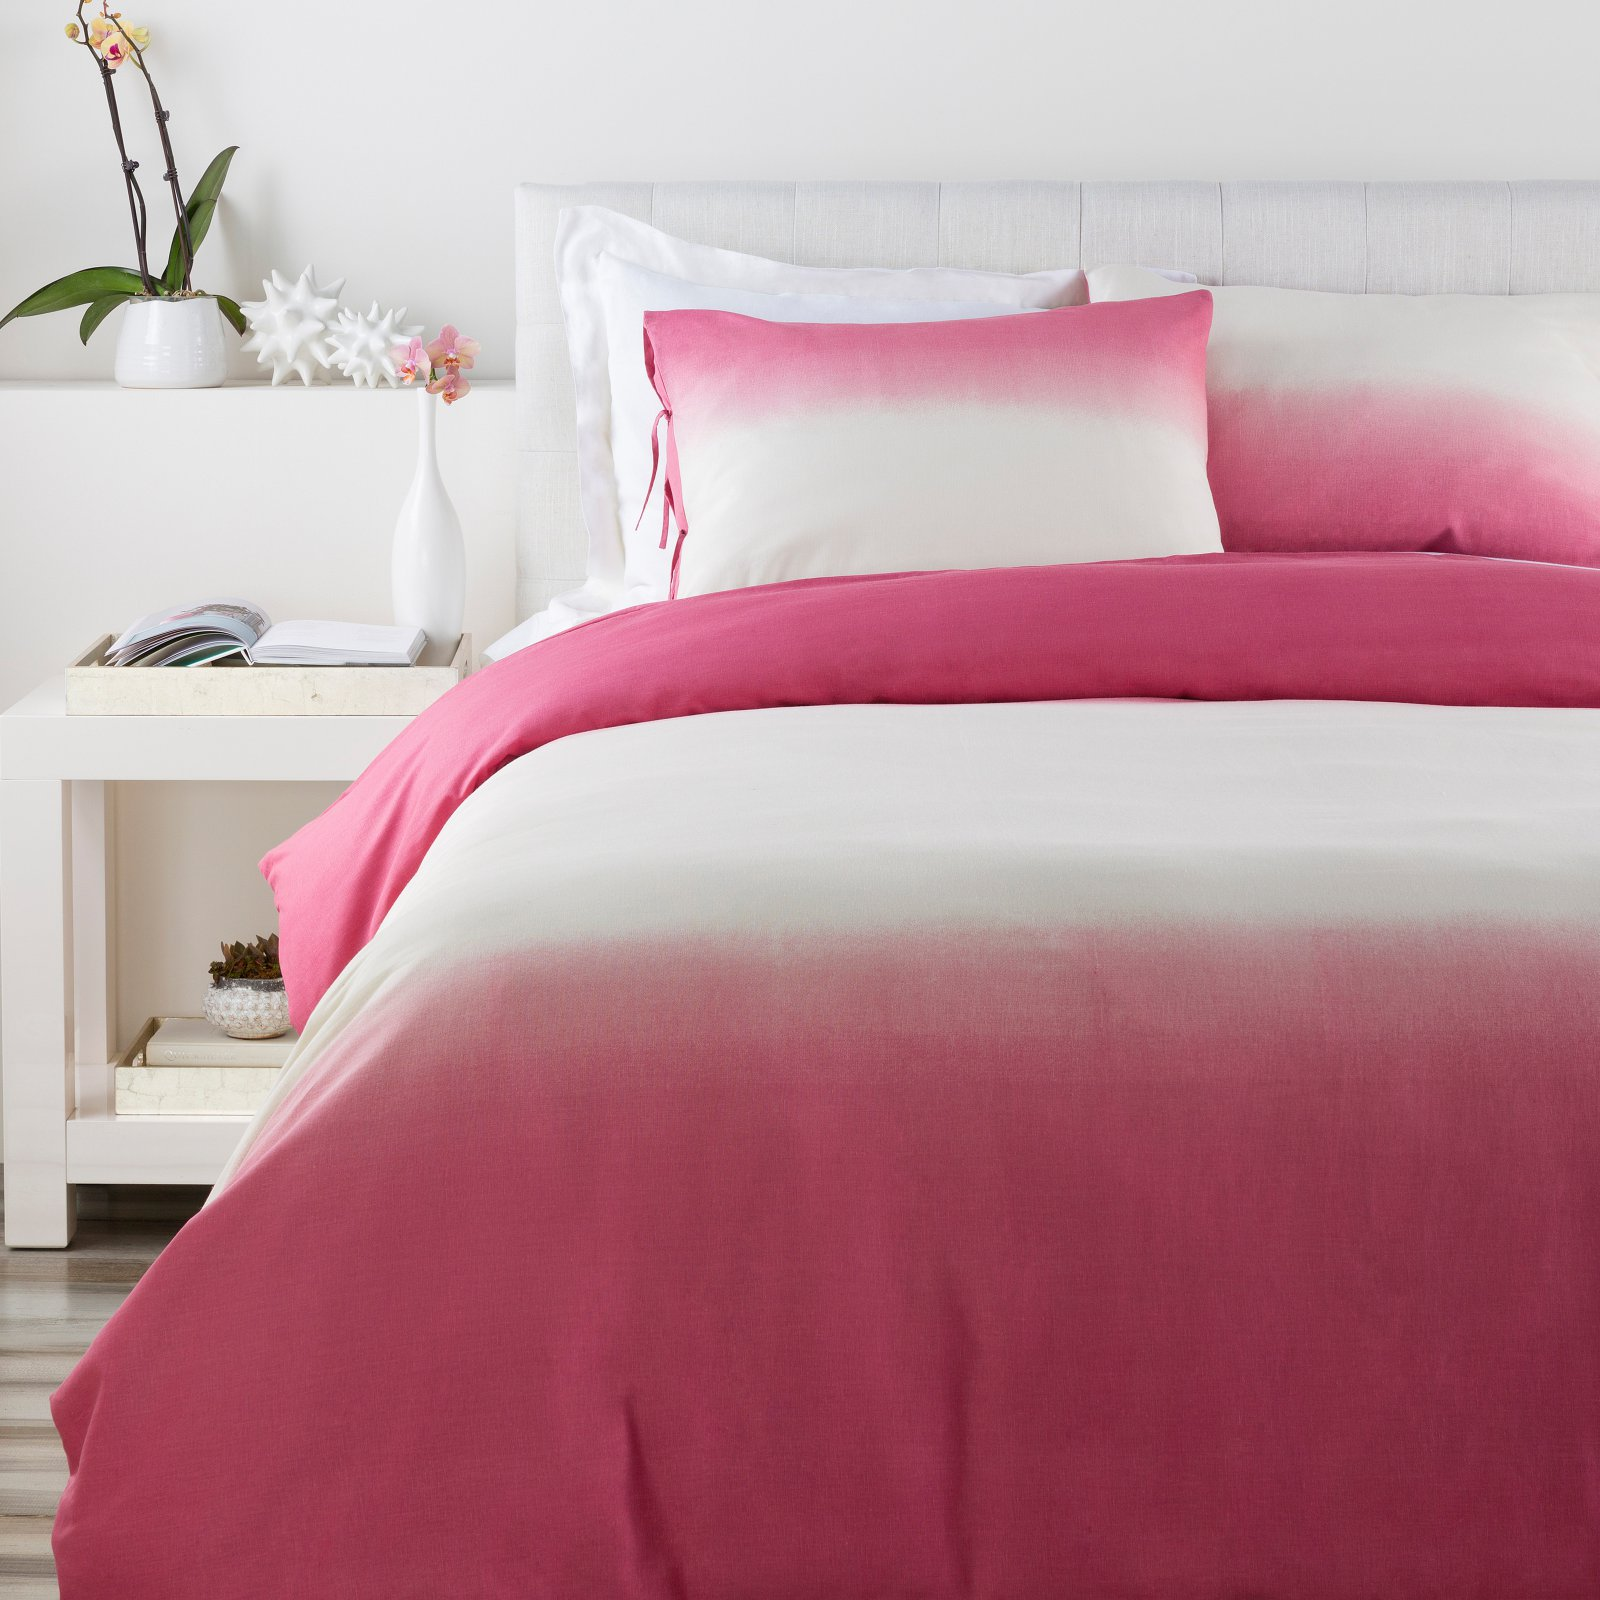 Dip Dyed Duvet Set by Surya